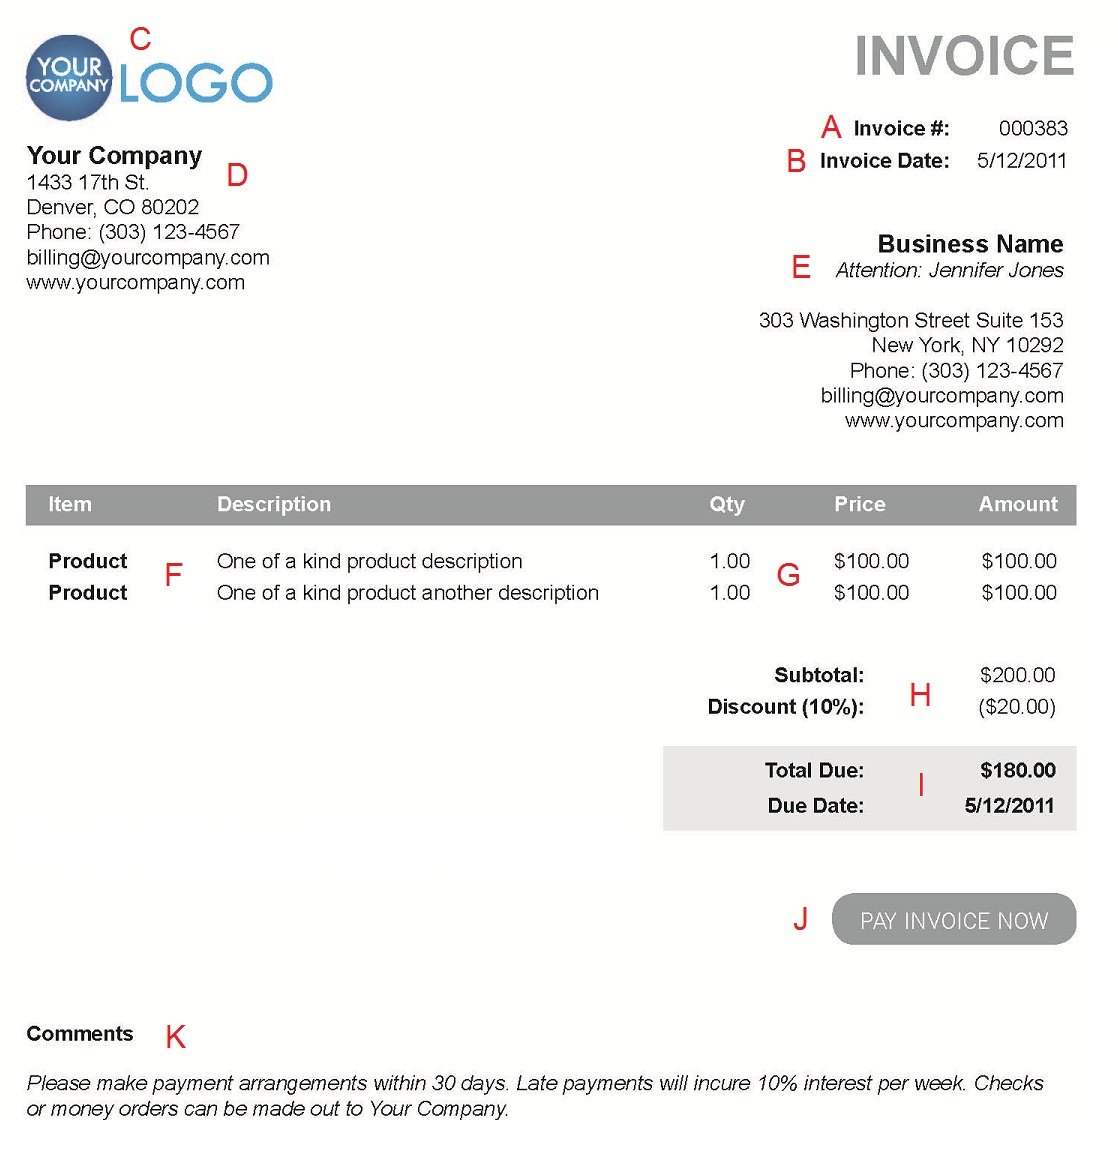 Carsforlessus  Nice The  Different Sections Of An Electronic Payment Invoice With Outstanding A  With Comely Excel Invoice Template Download Also Business Invoice Forms In Addition Contractor Invoices And Word Invoice Templates As Well As Create An Invoice In Word Additionally Zoho Invoice Login From Paysimplecom With Carsforlessus  Outstanding The  Different Sections Of An Electronic Payment Invoice With Comely A  And Nice Excel Invoice Template Download Also Business Invoice Forms In Addition Contractor Invoices From Paysimplecom